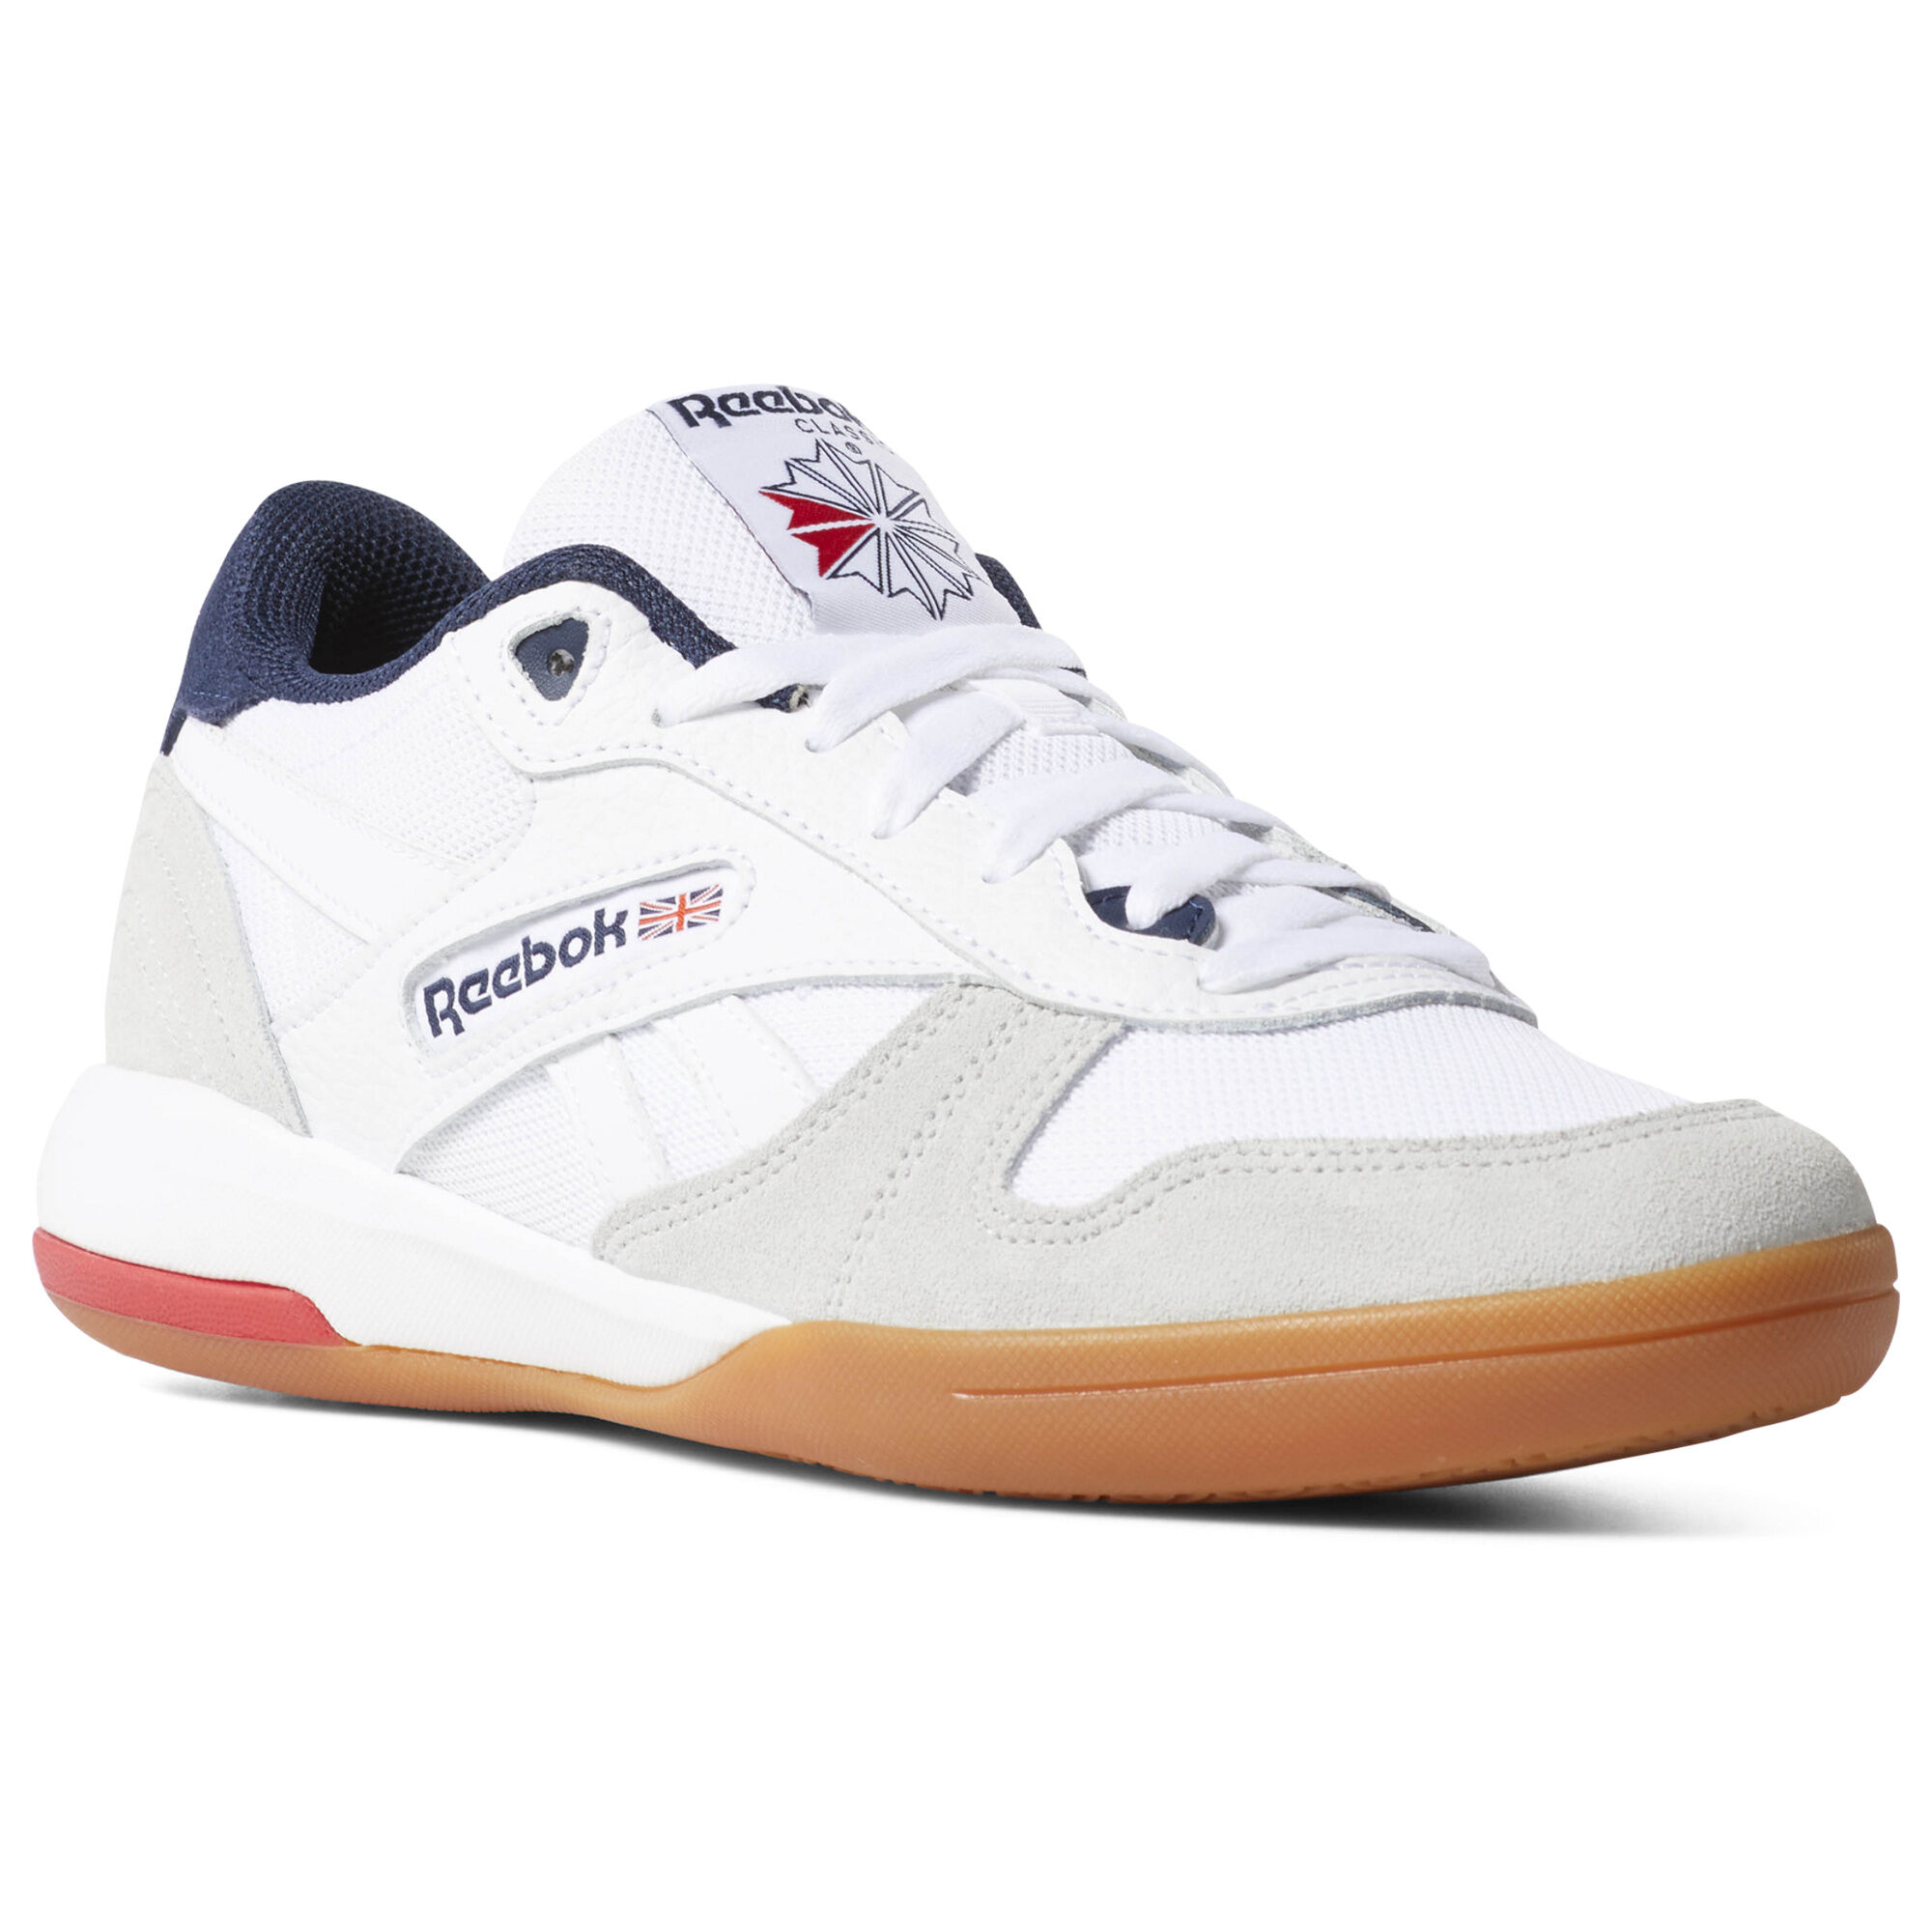 dee6f588fc6a7 Chaussures Reebok Classic Hommes